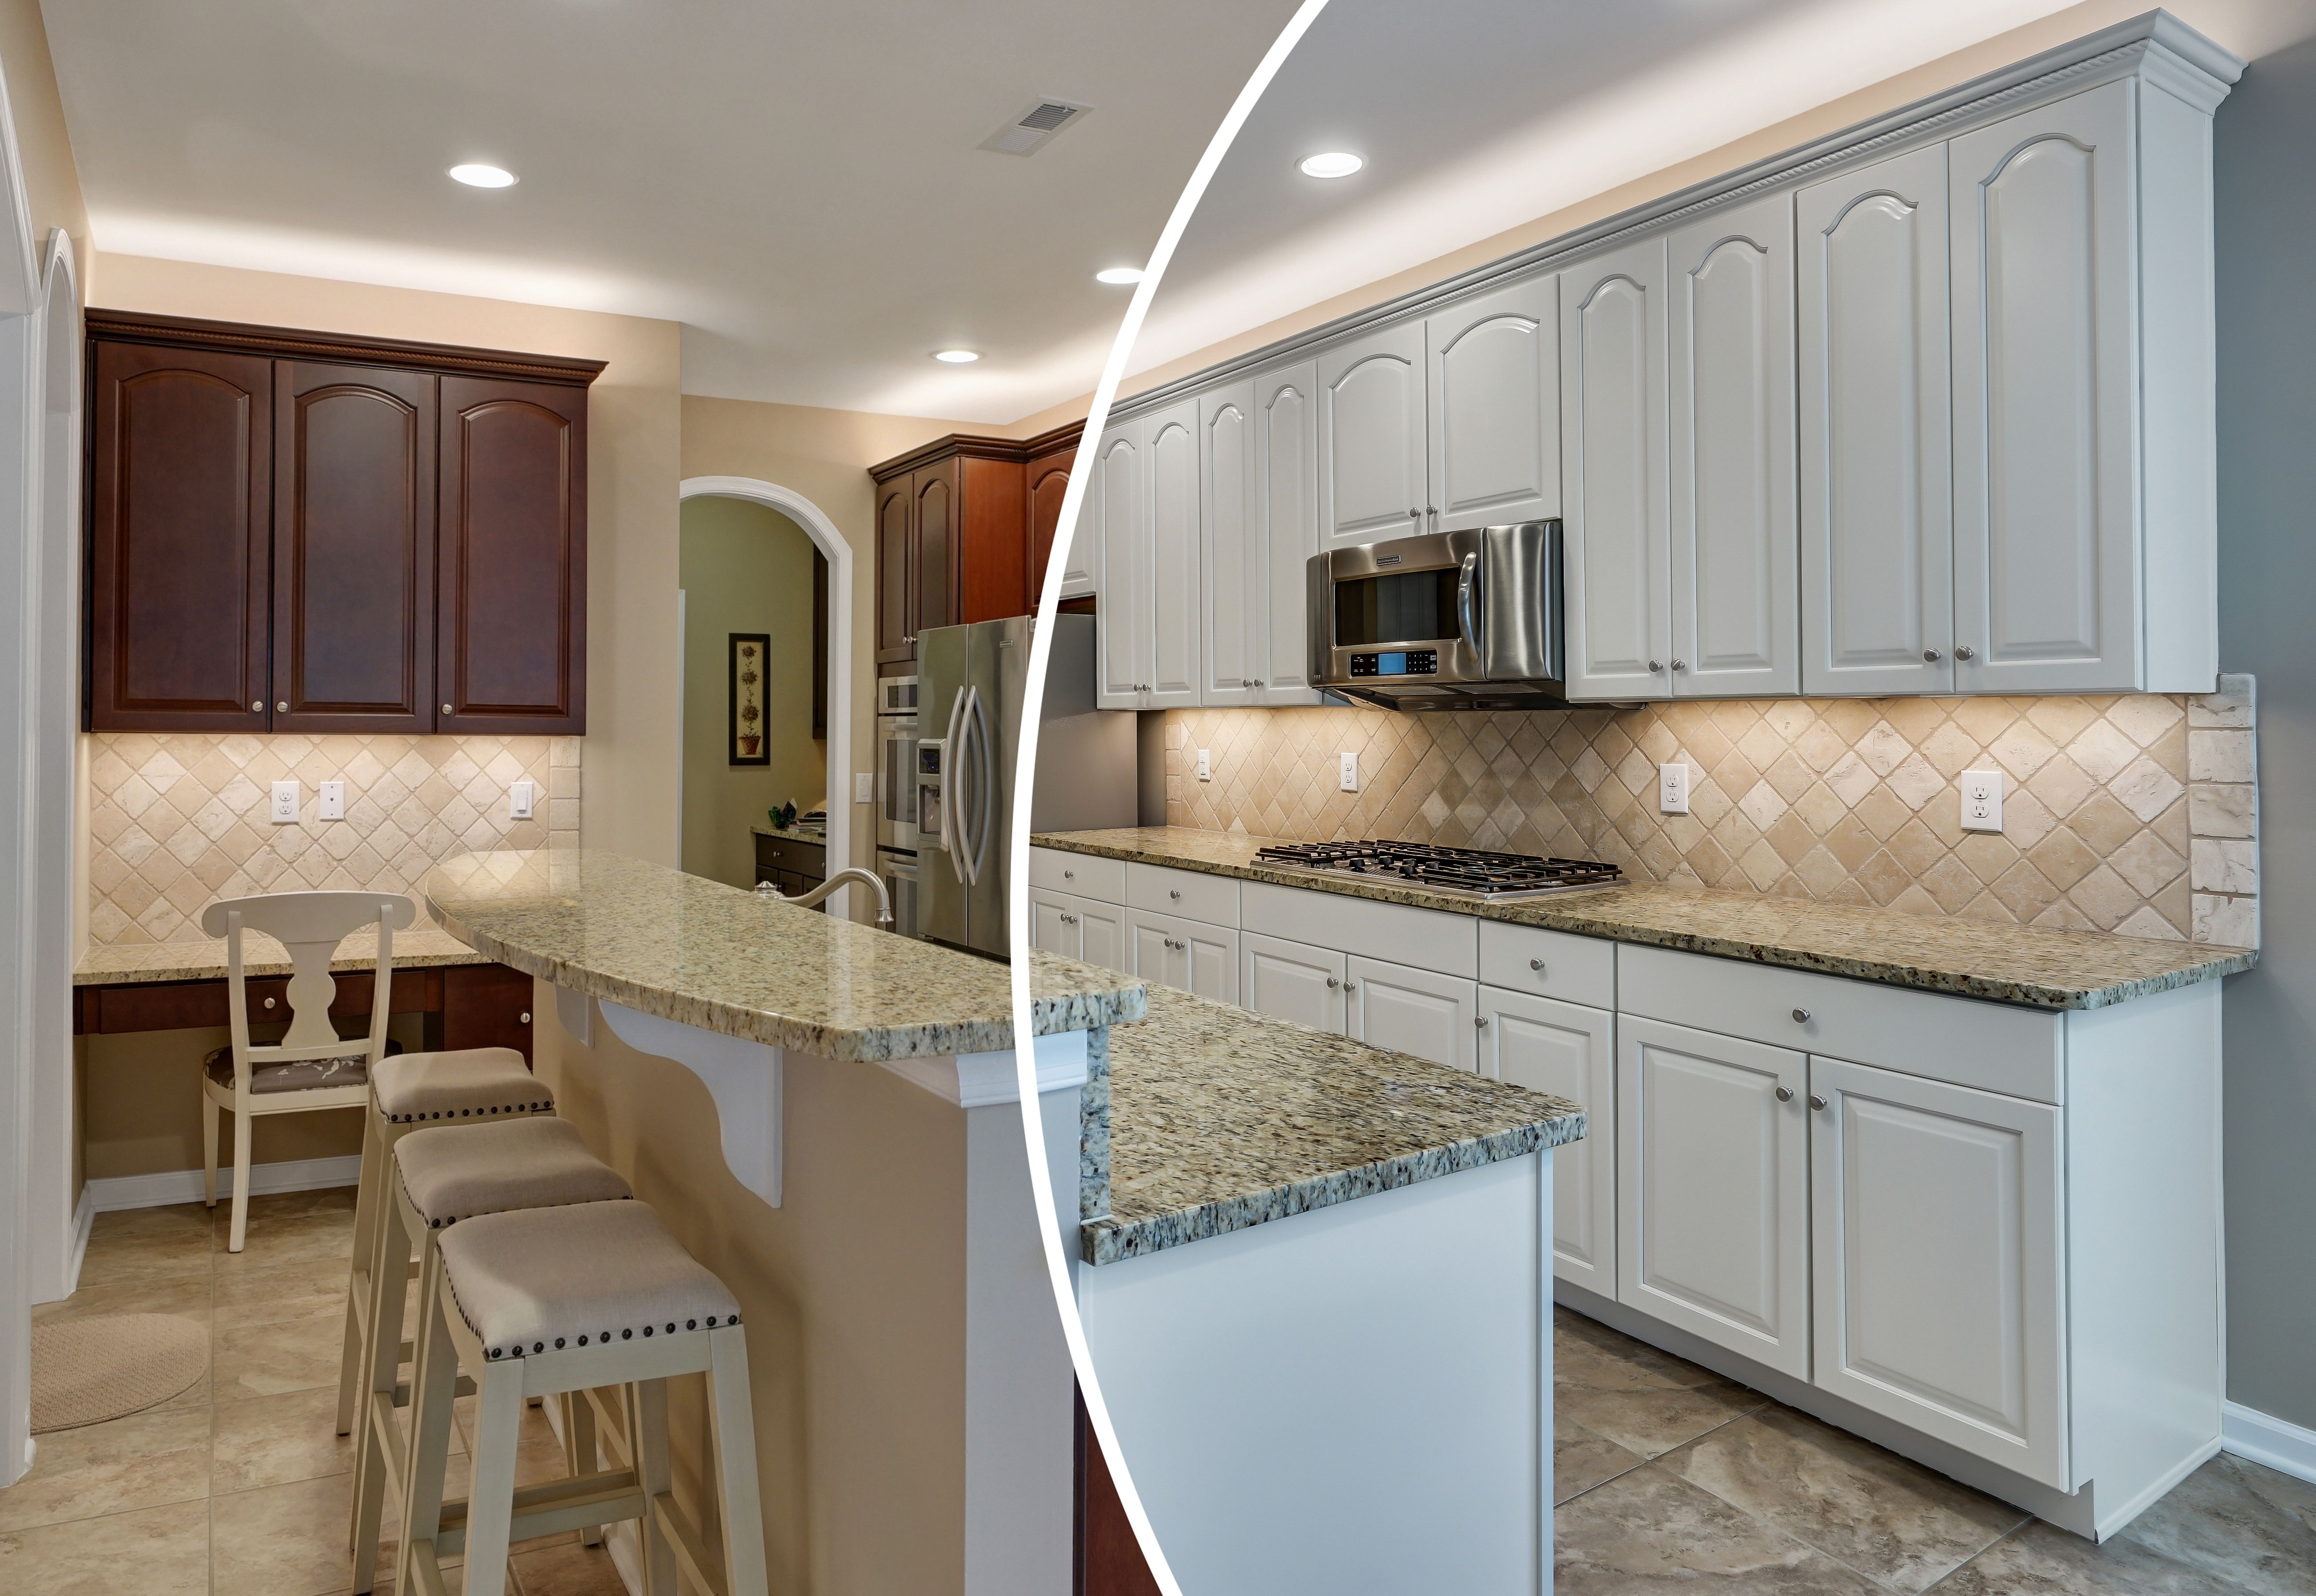 Professional Cabinet Painting Traditional Kitchen Remodel Refinishing Cabinets Cabinet Colors